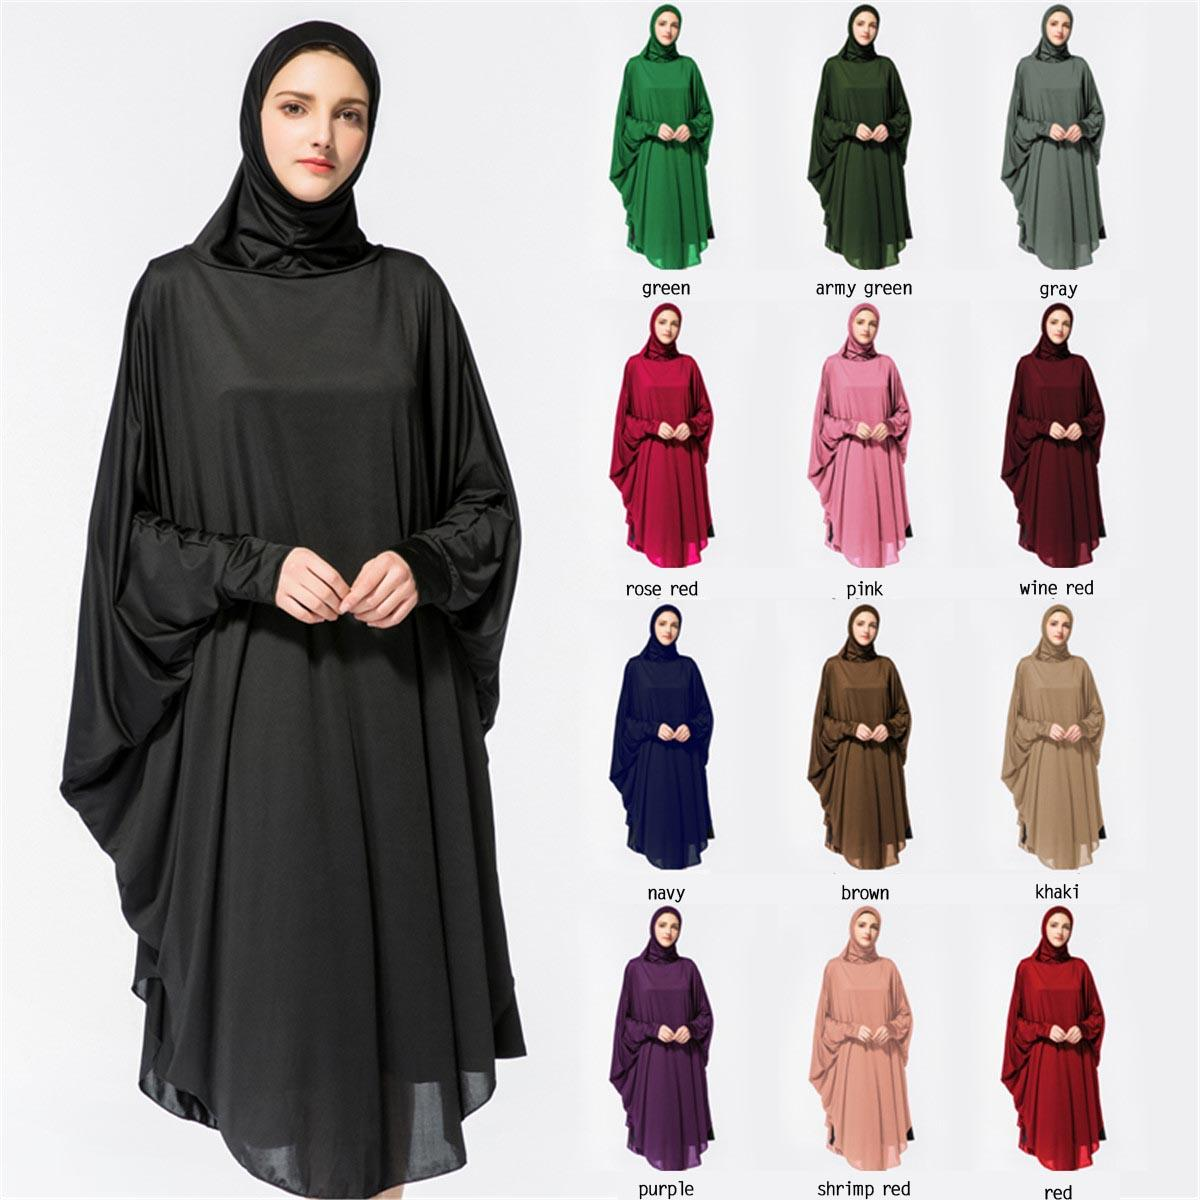 Women Muslim Hijab Abaya Prayer Dress Thobe Gown Bat Sleeve Middle East Robe Islamic Hooded Jilbab Khimar Kaftan Praying Abayas